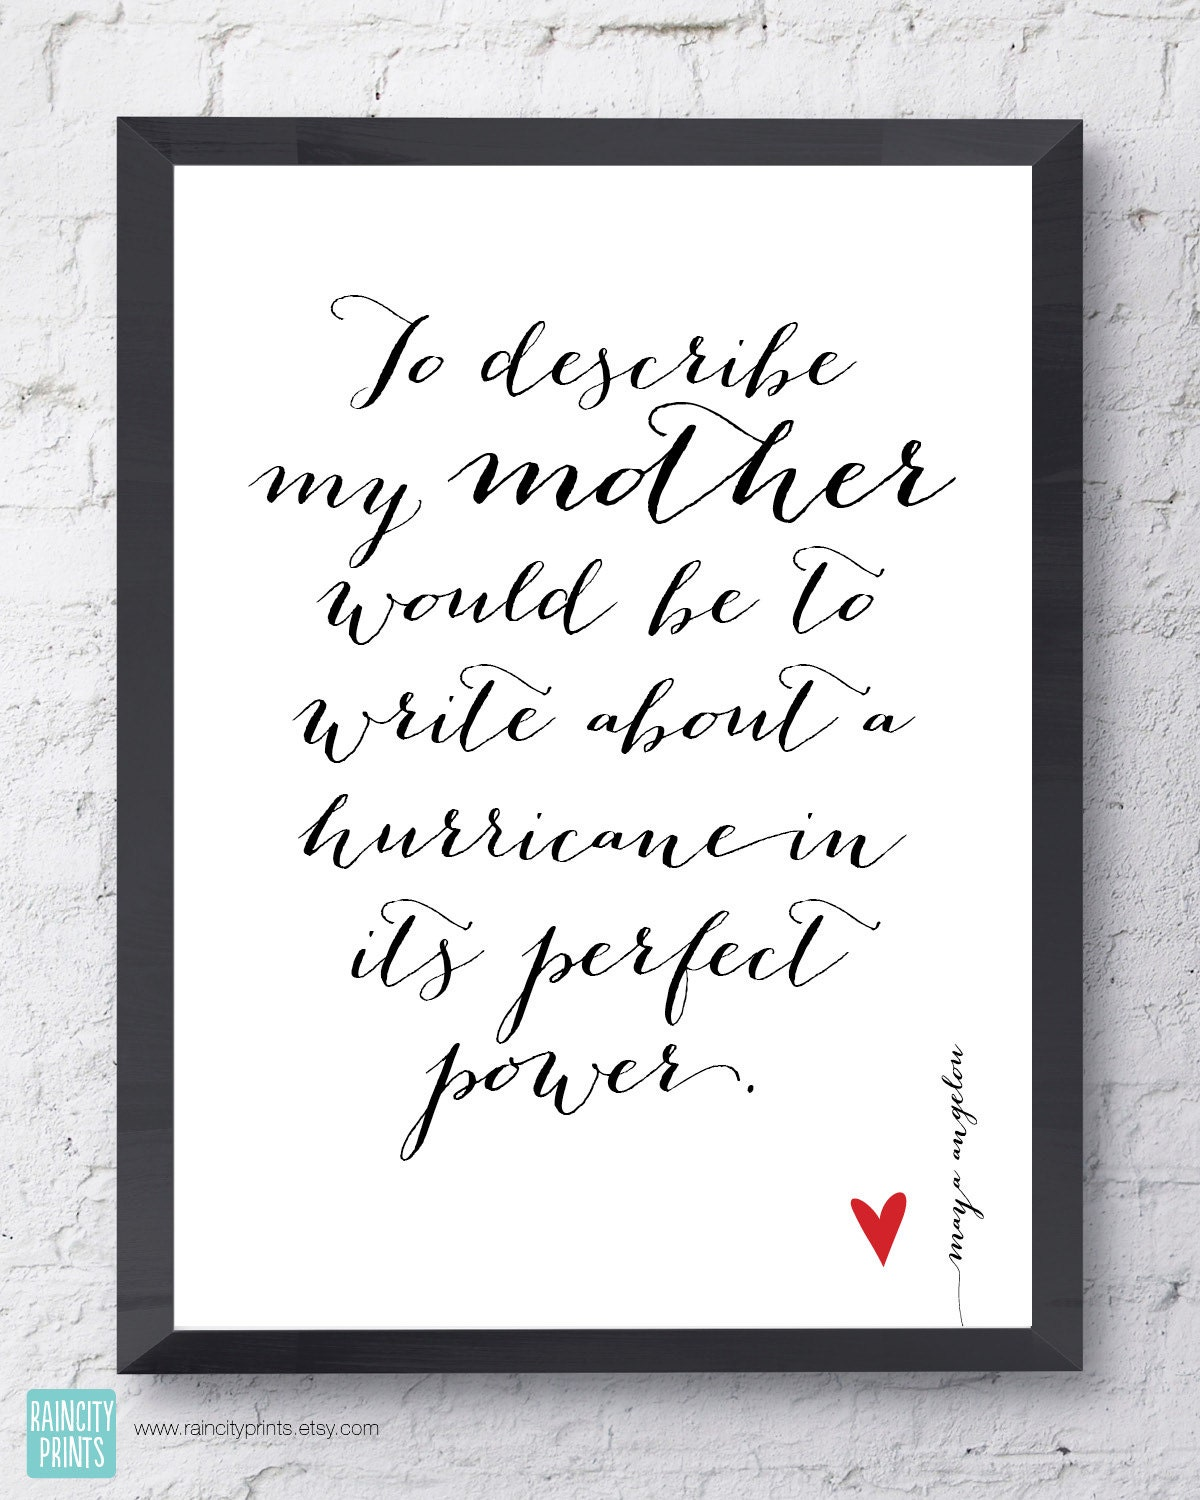 Wedding Day Quotes Maya Angelou Mother Quotemother's Day Gift.